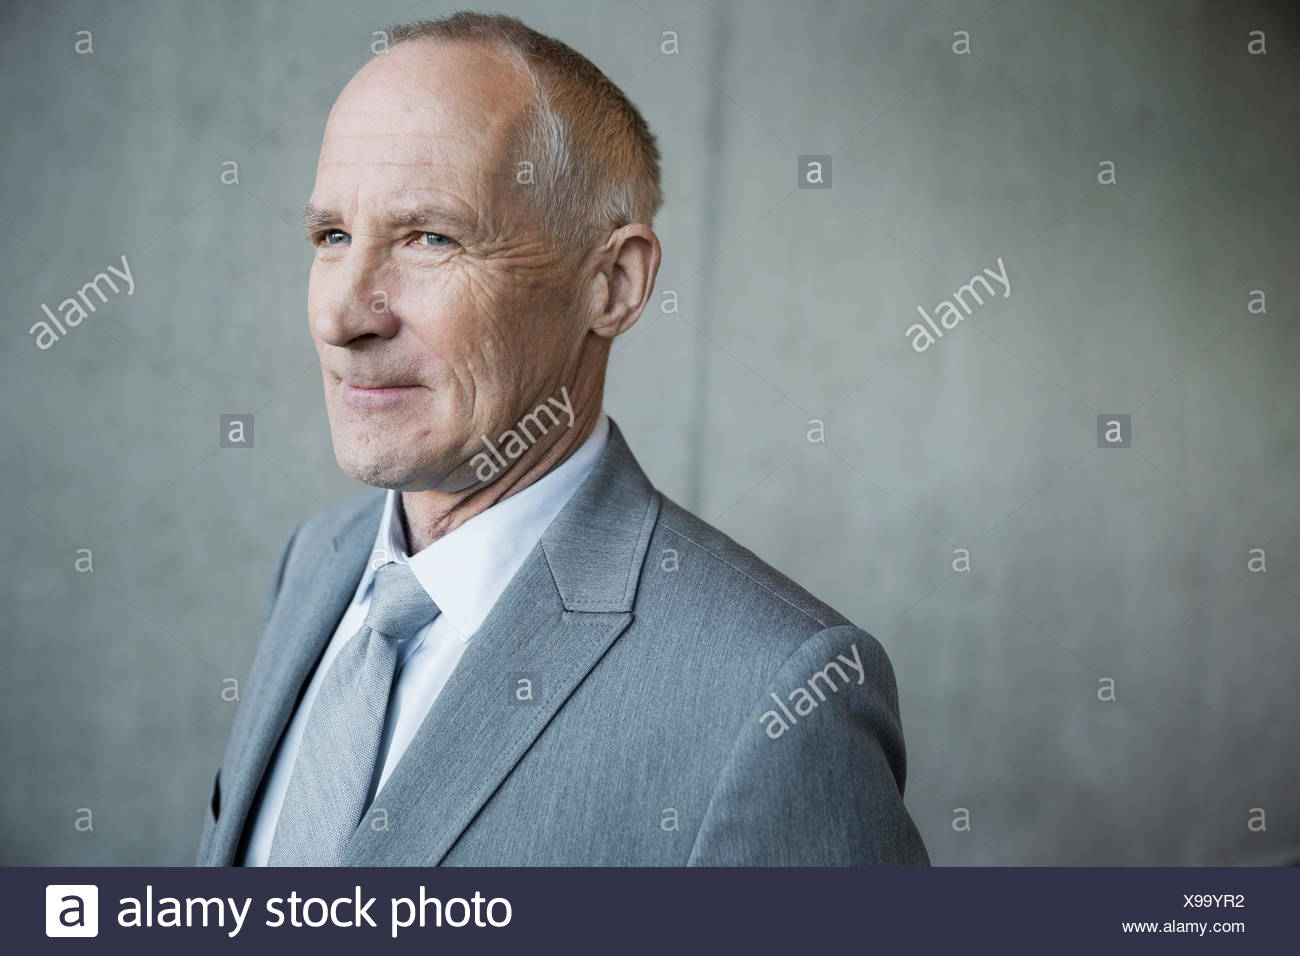 Confident businessman suit gray hair looking away - Stock Image